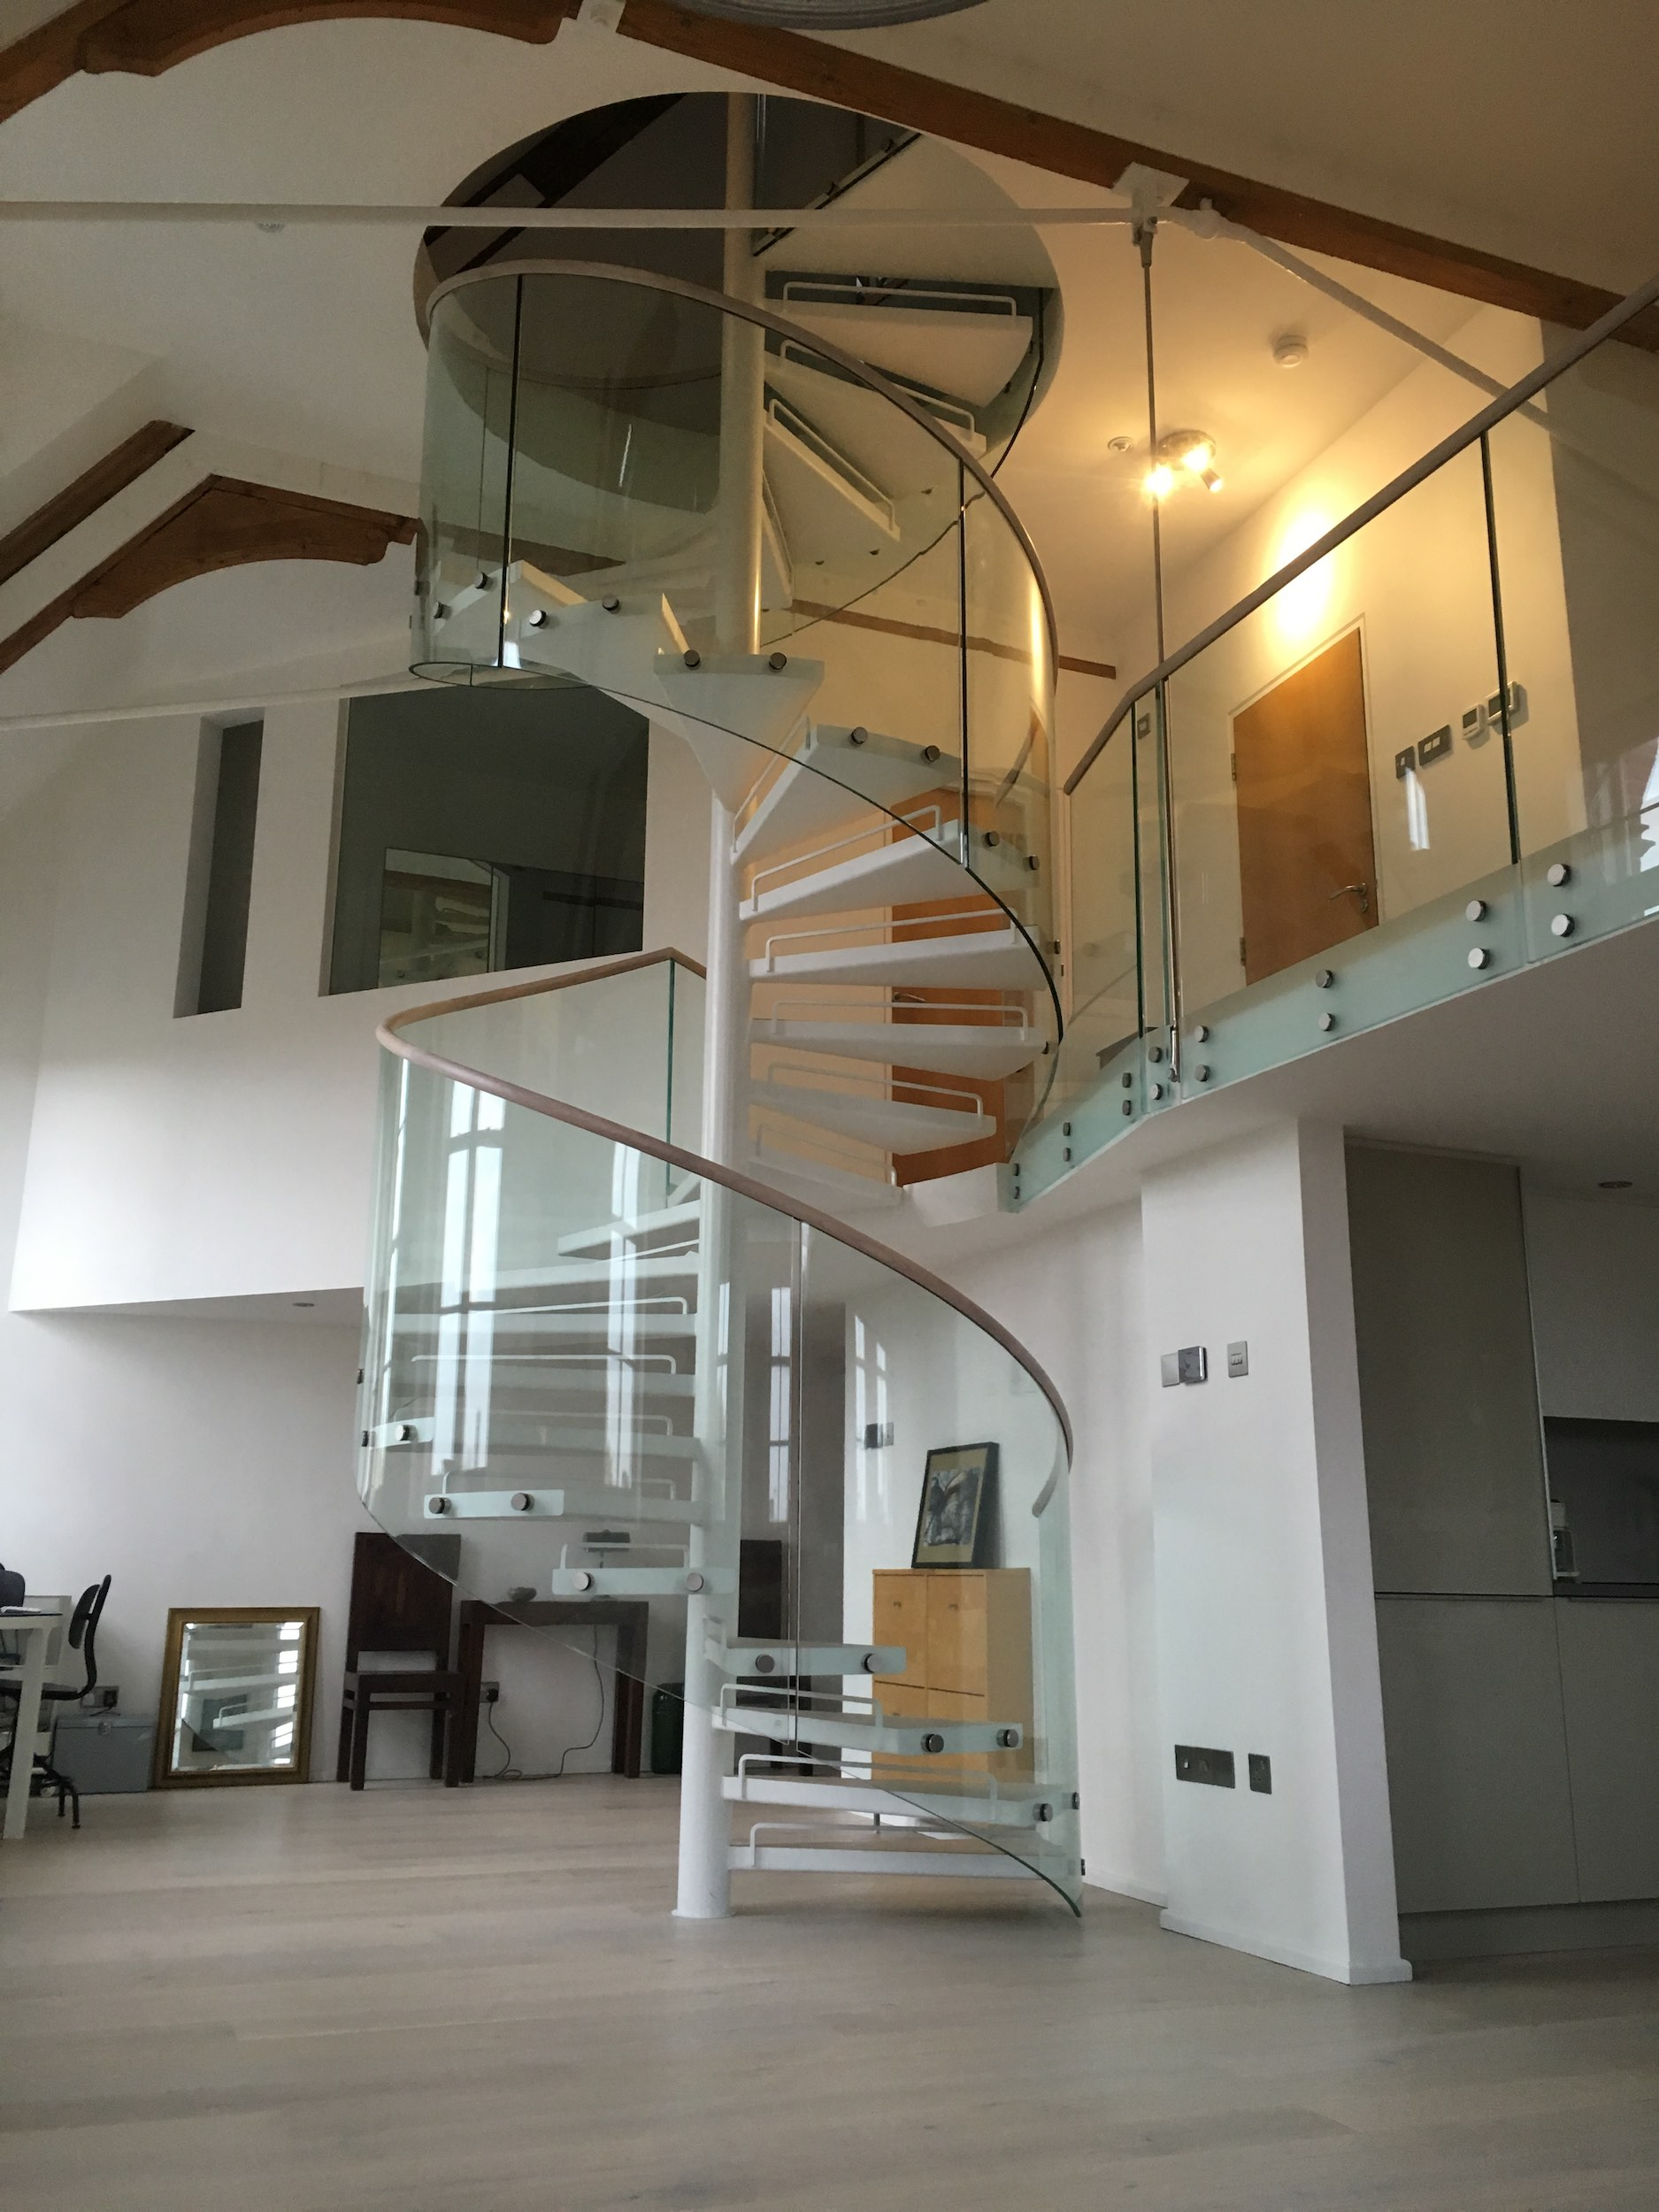 These NZ spiral stairs achieve the minimal look with open risers and glass balustrades